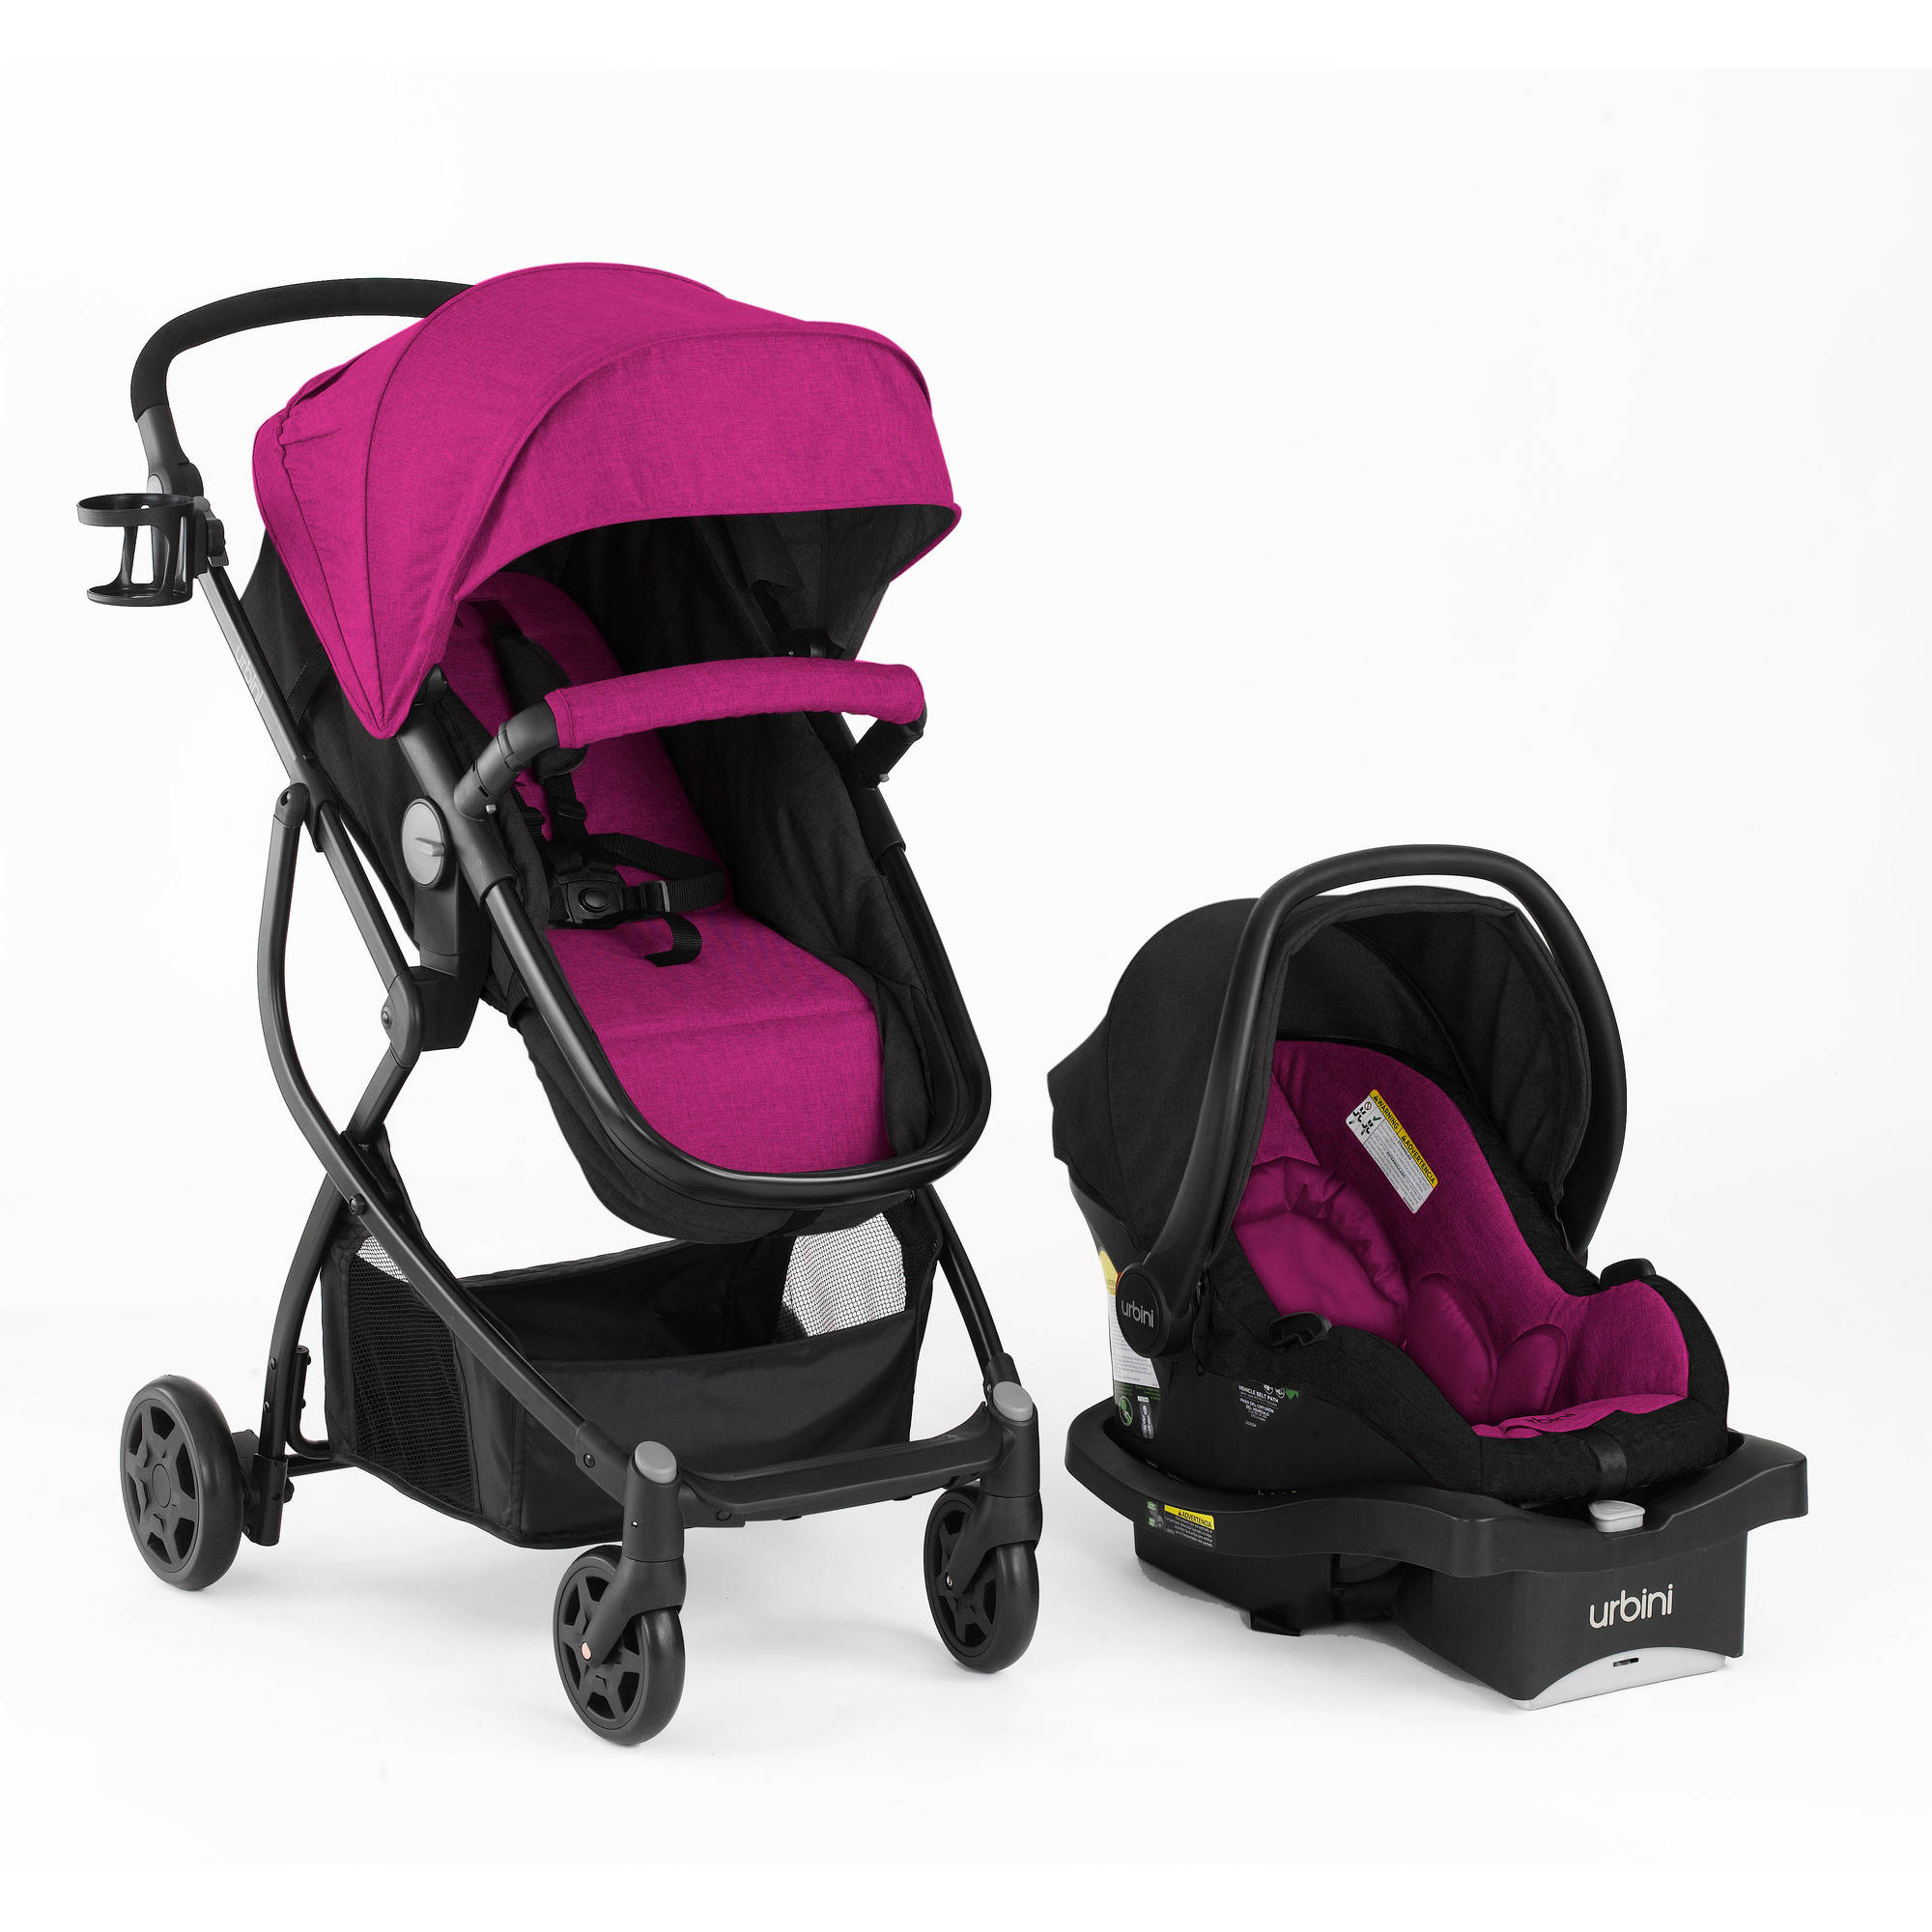 Top Lightweight Travel System Strollers Urbini Omni Plus 3 In 1 Travel System Special Edition